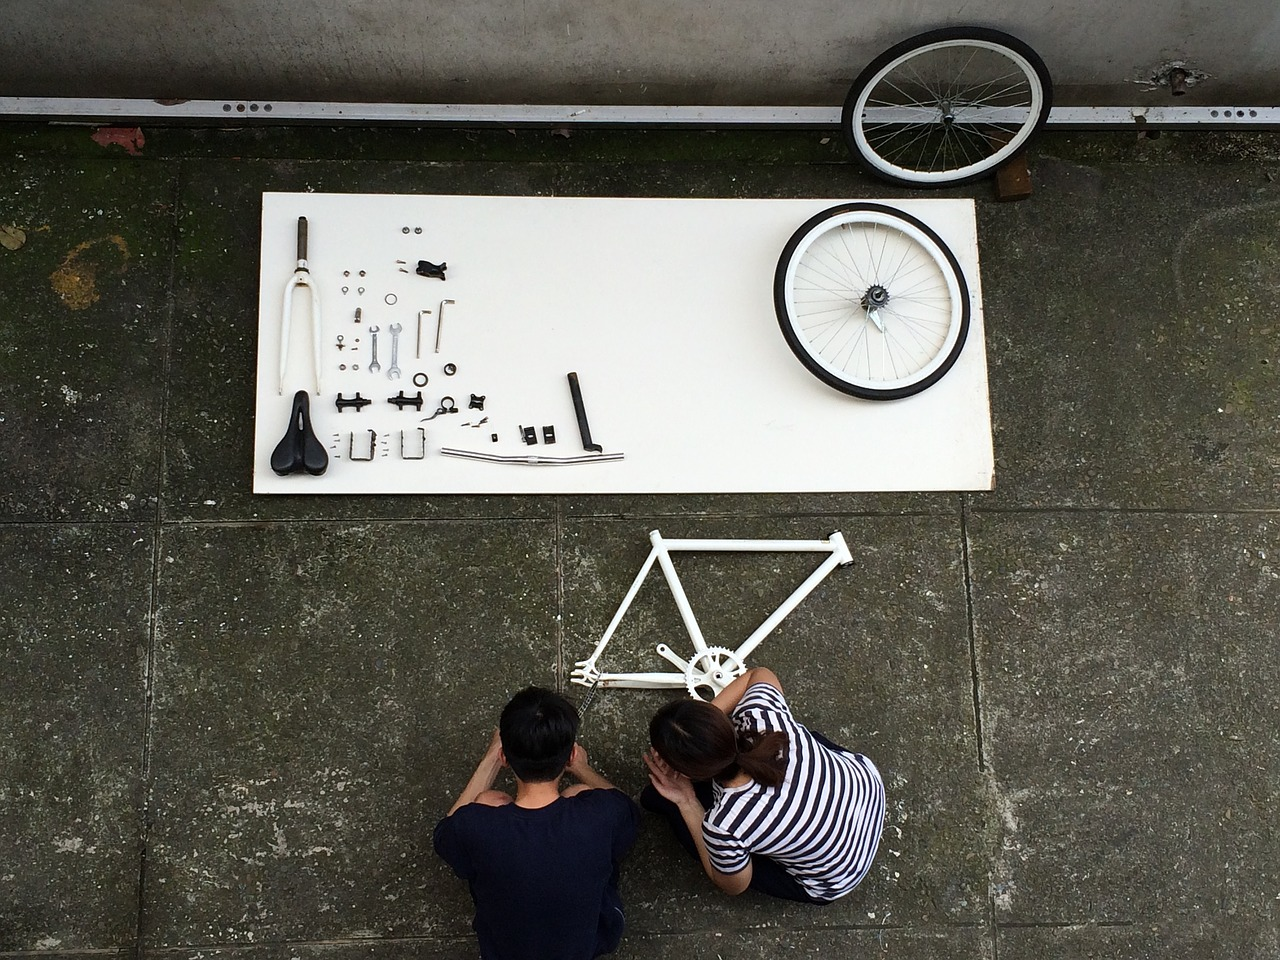 assembling-a-bicycle-1727903_1280